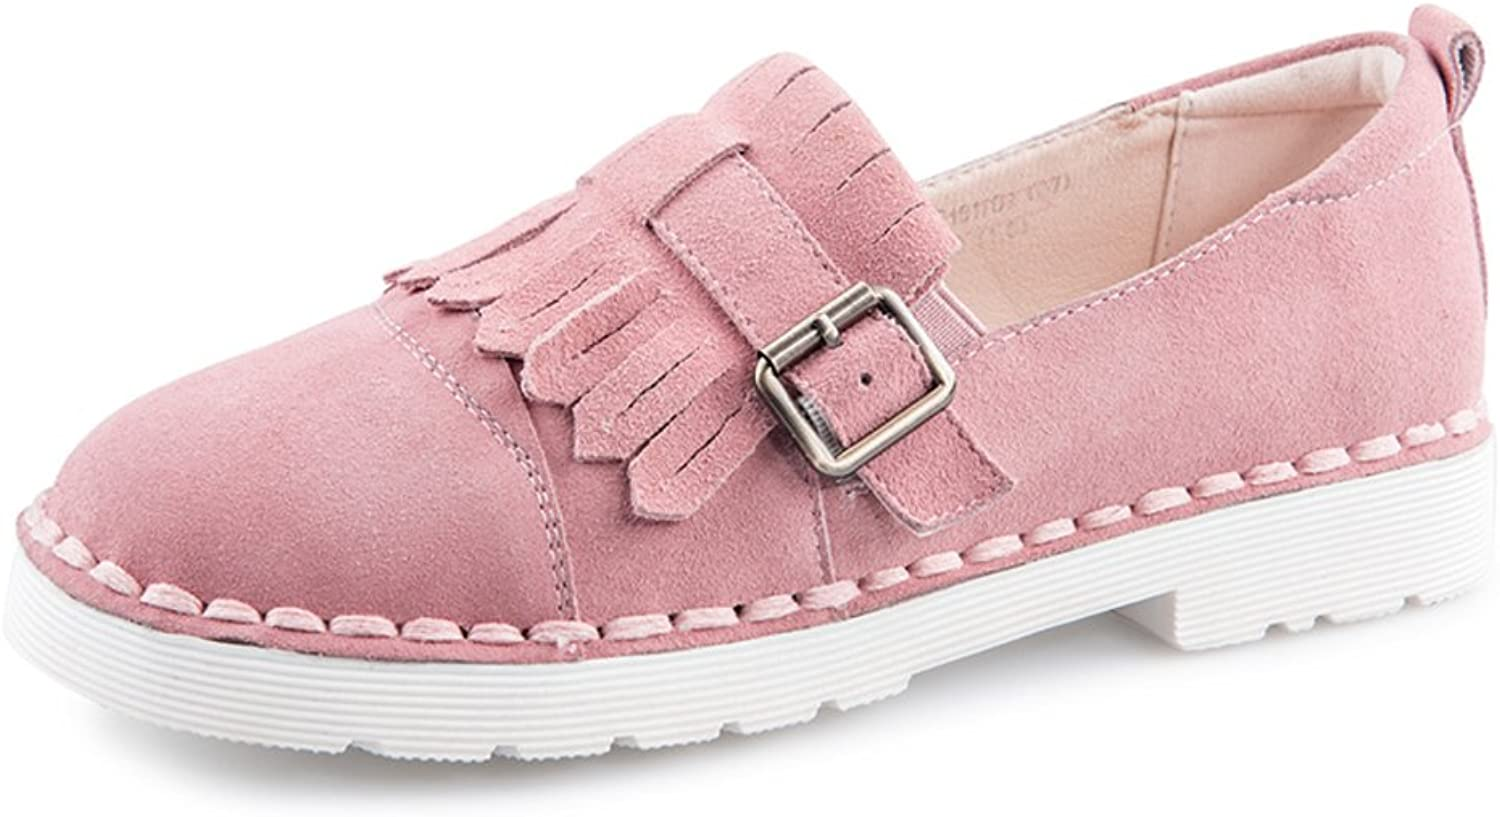 MET RXL Spring and Autumn,Tassel,Casual shoes Lady,Low Heels shoes